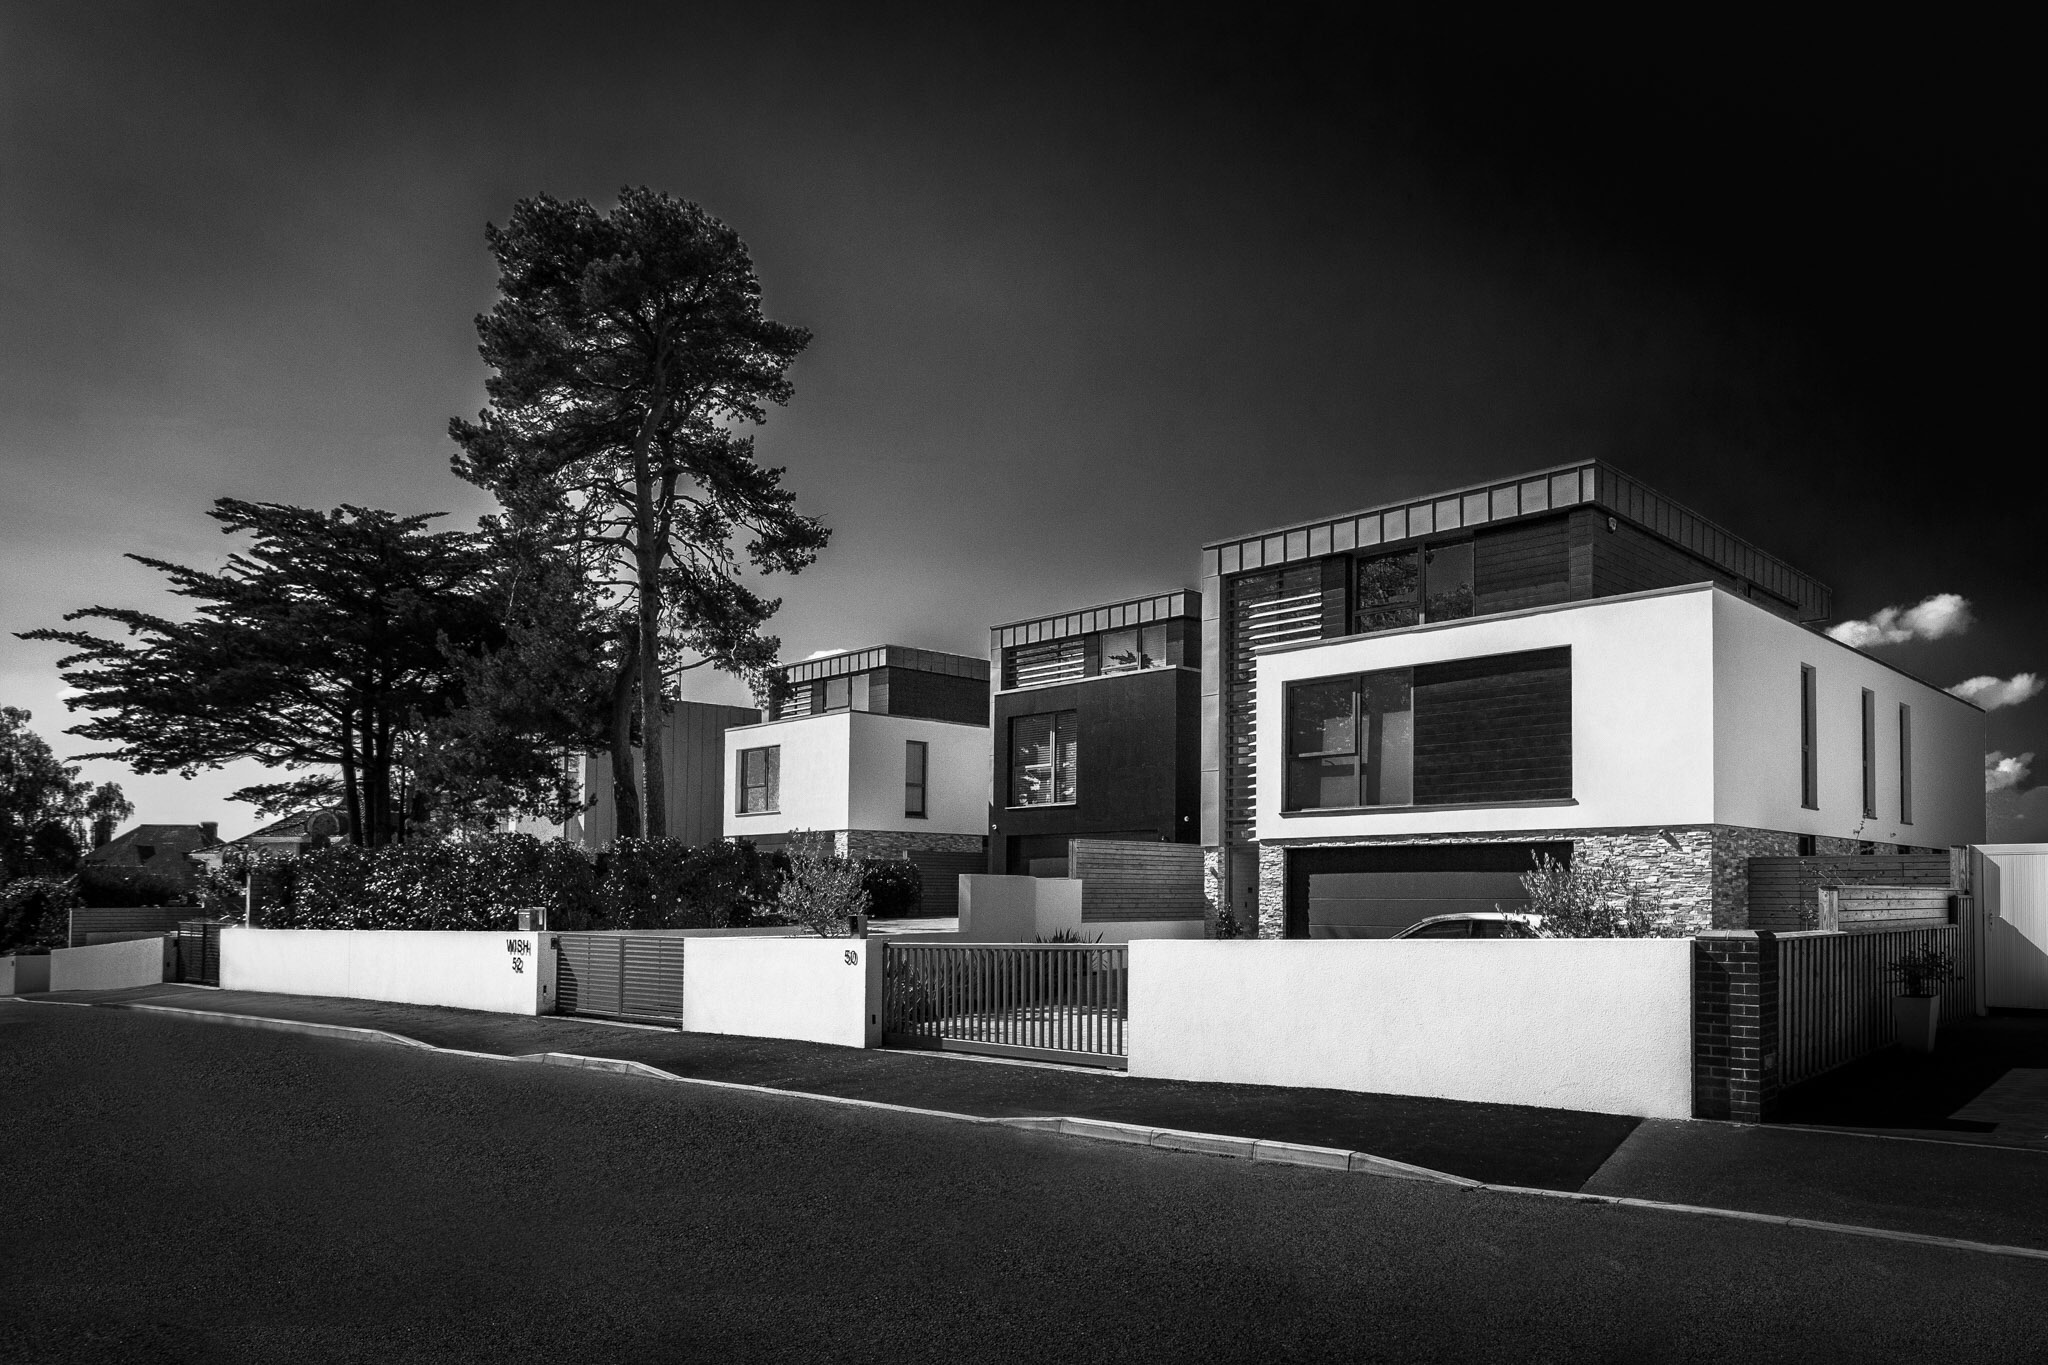 Render to new buildings by construction photographer Rick McEvoy